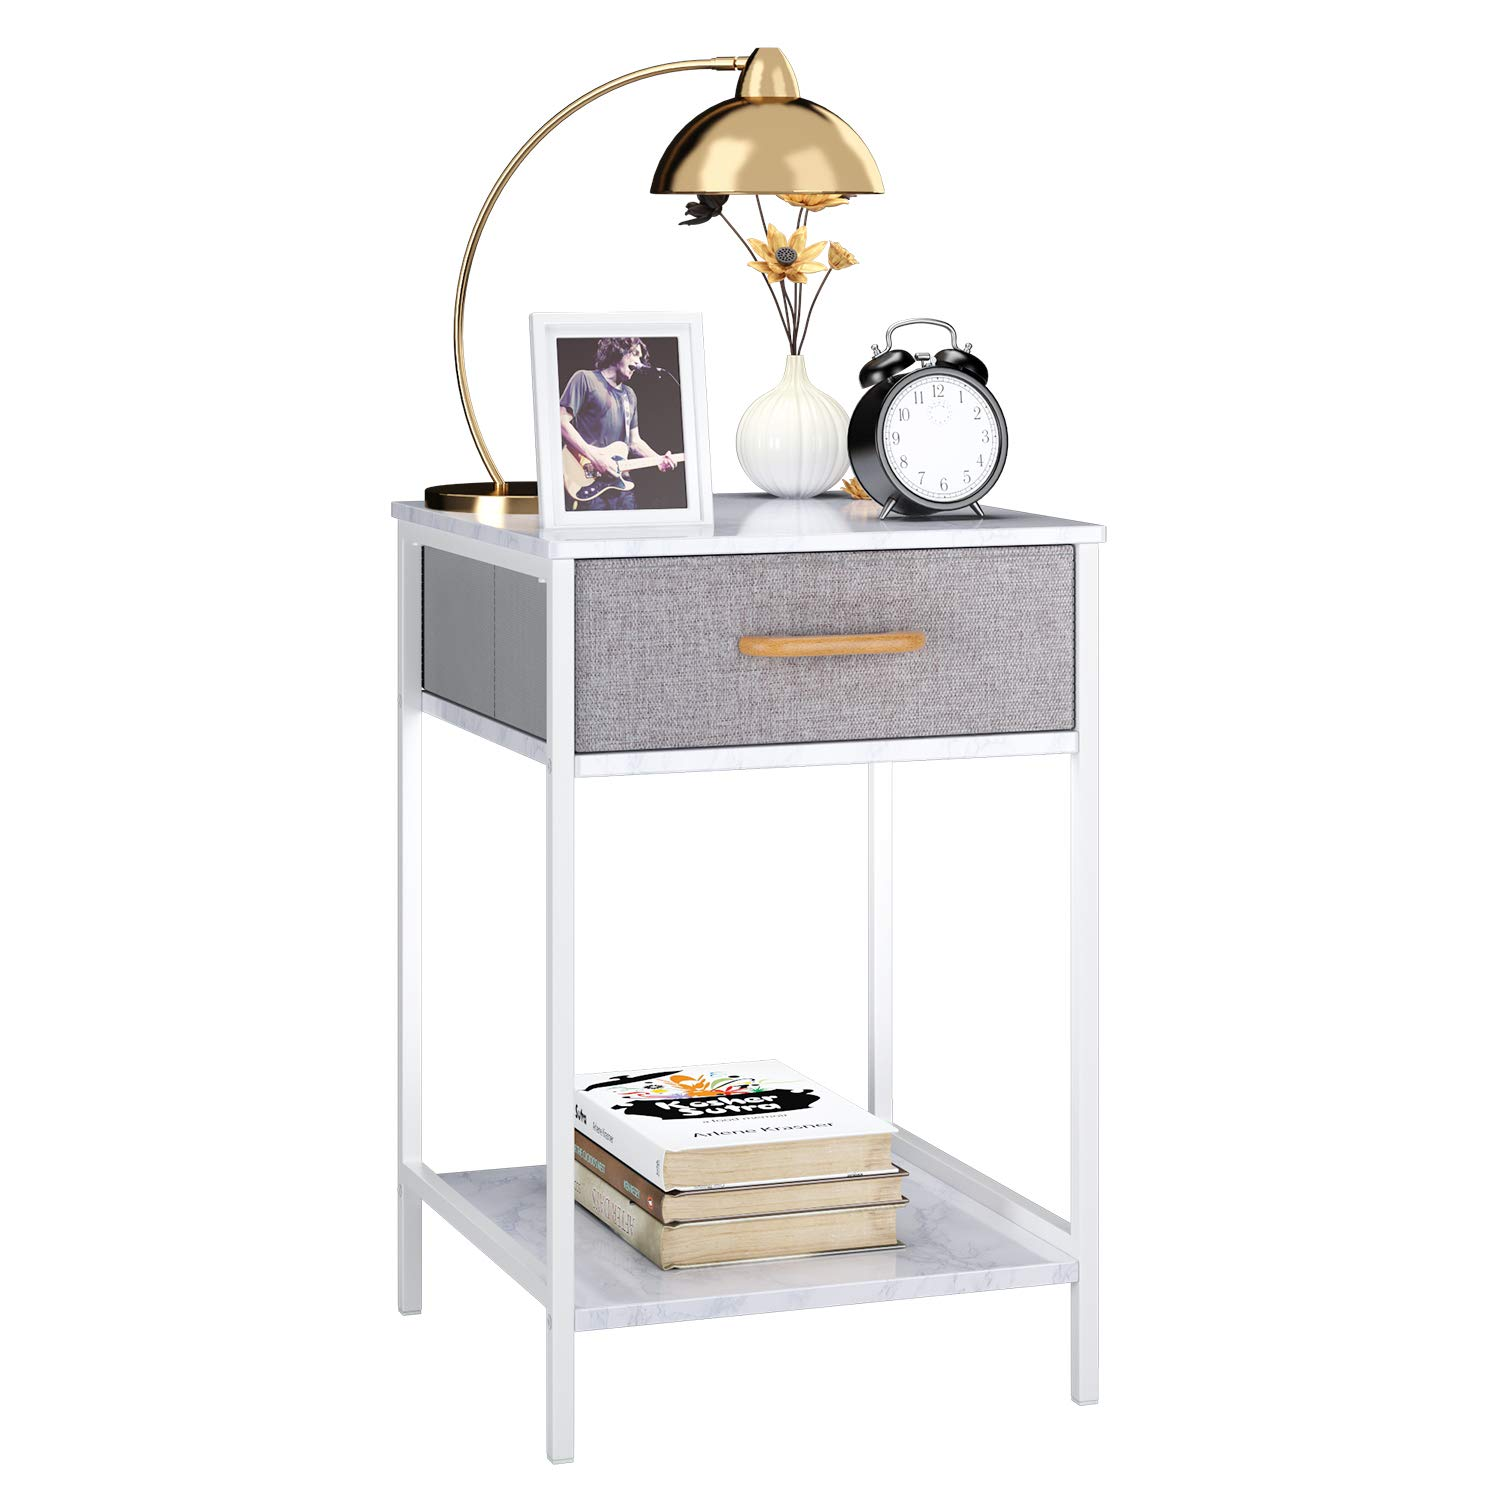 Homfa Nightstand, 2-Tier End Table Side Table with Drawer, Shelf Dresser Storage Organizer and Open Shelf, Accent Table Modern Furniture in Bedroom Home by Homfa